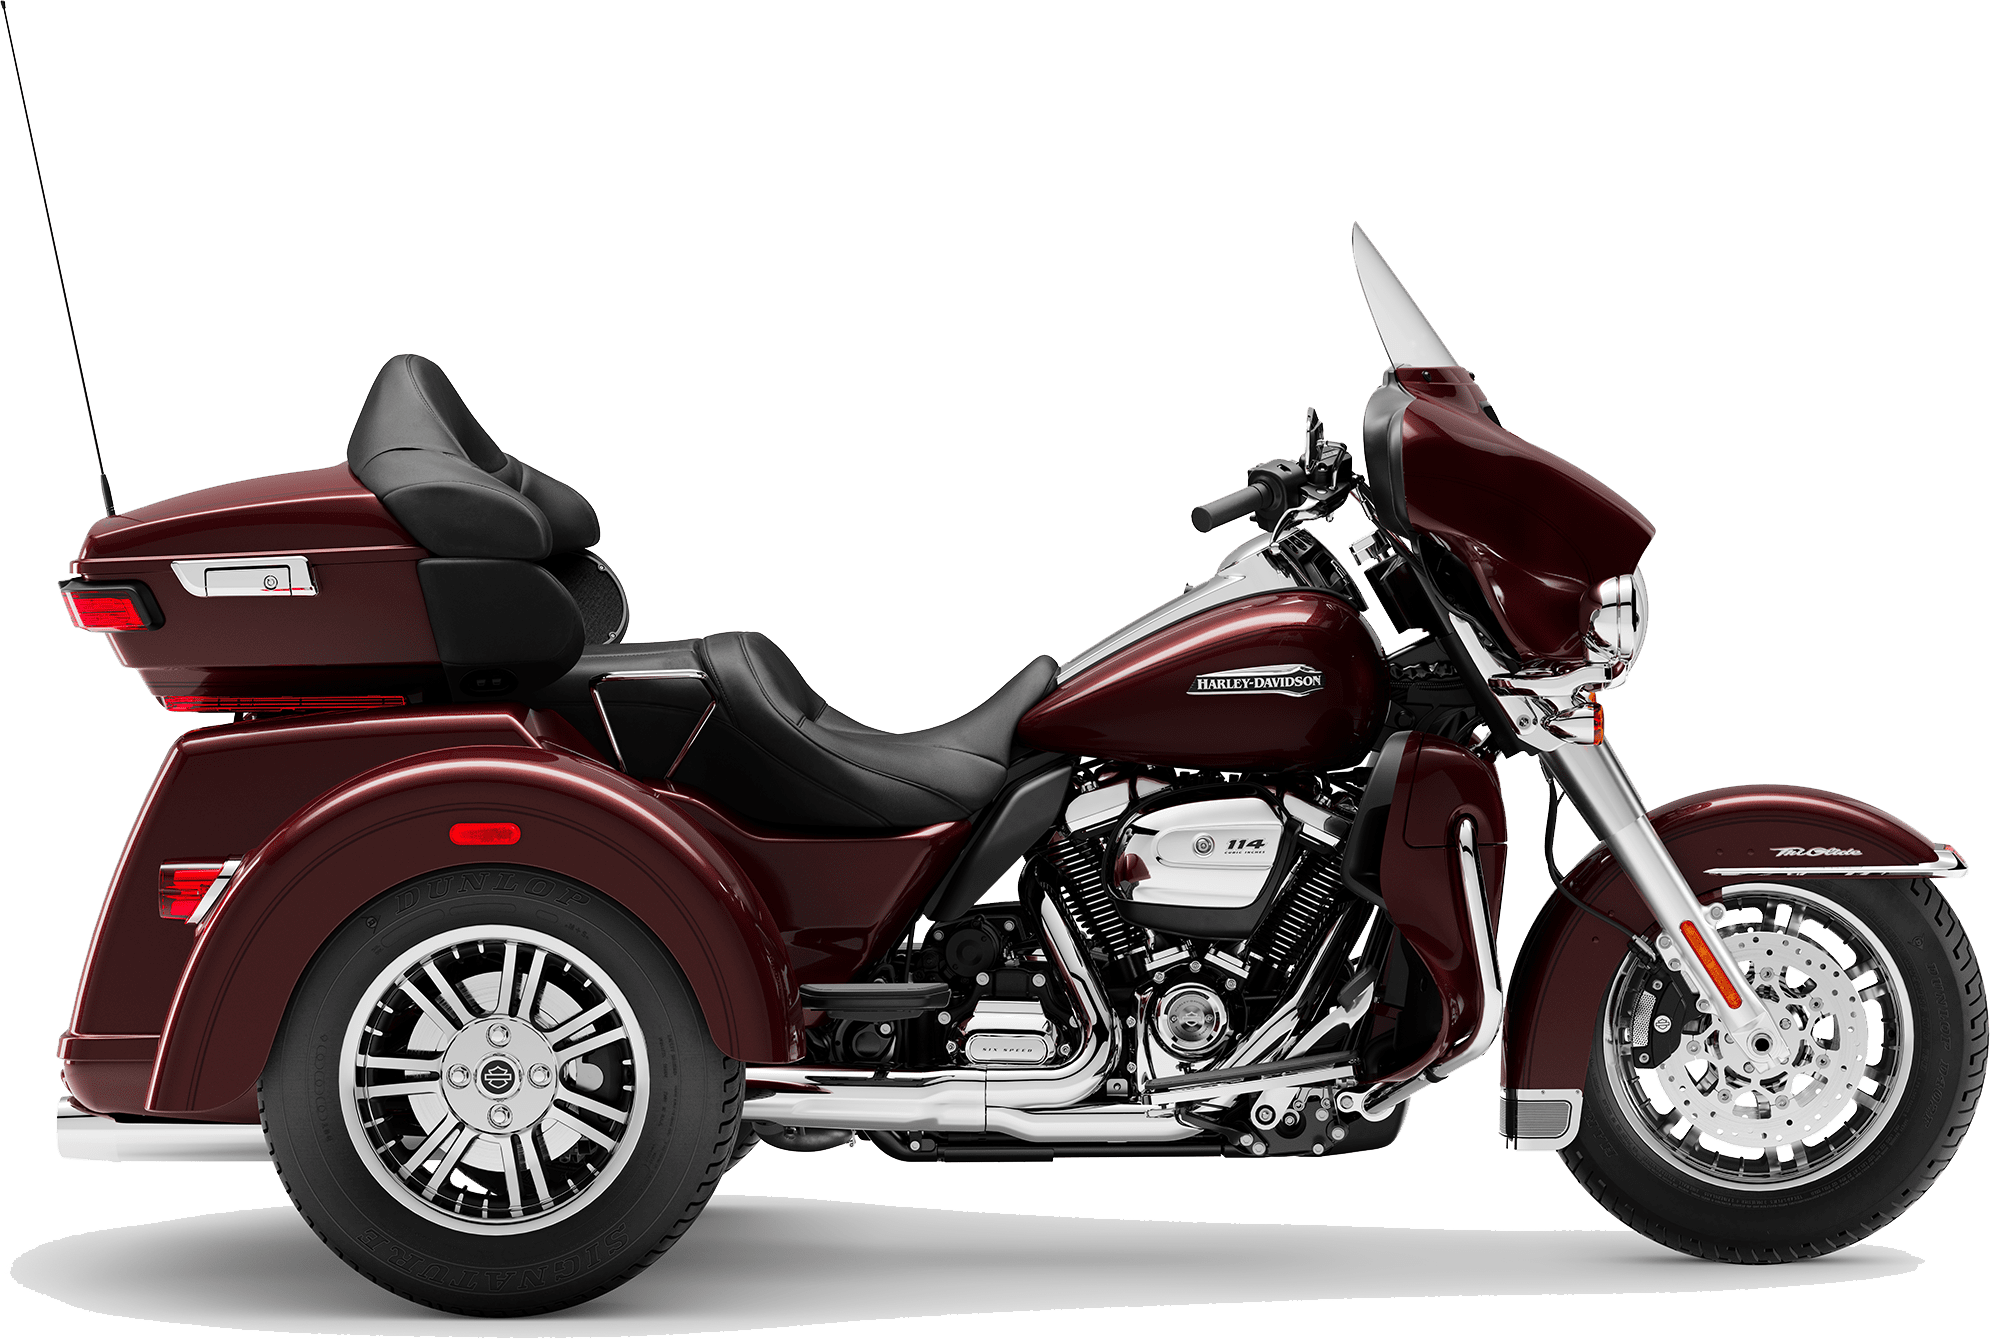 2019 Harley-Davidson Tri-Glide Ultra Twisted Cherry